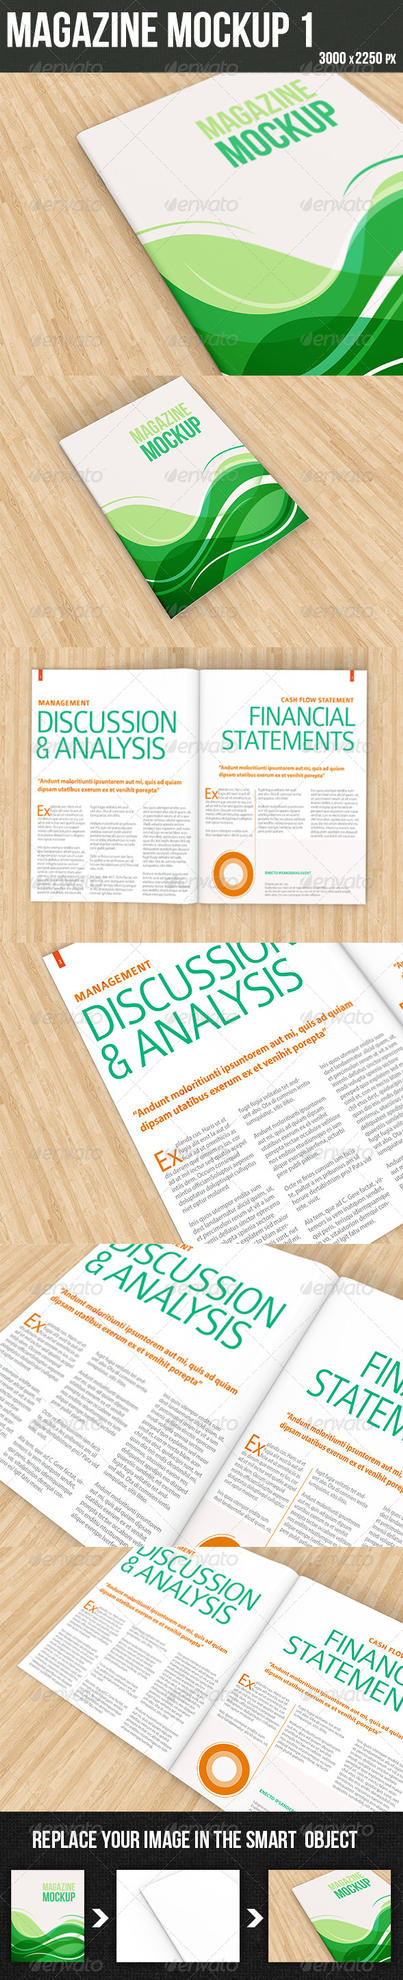 Magazine Mockup11 by graphickey